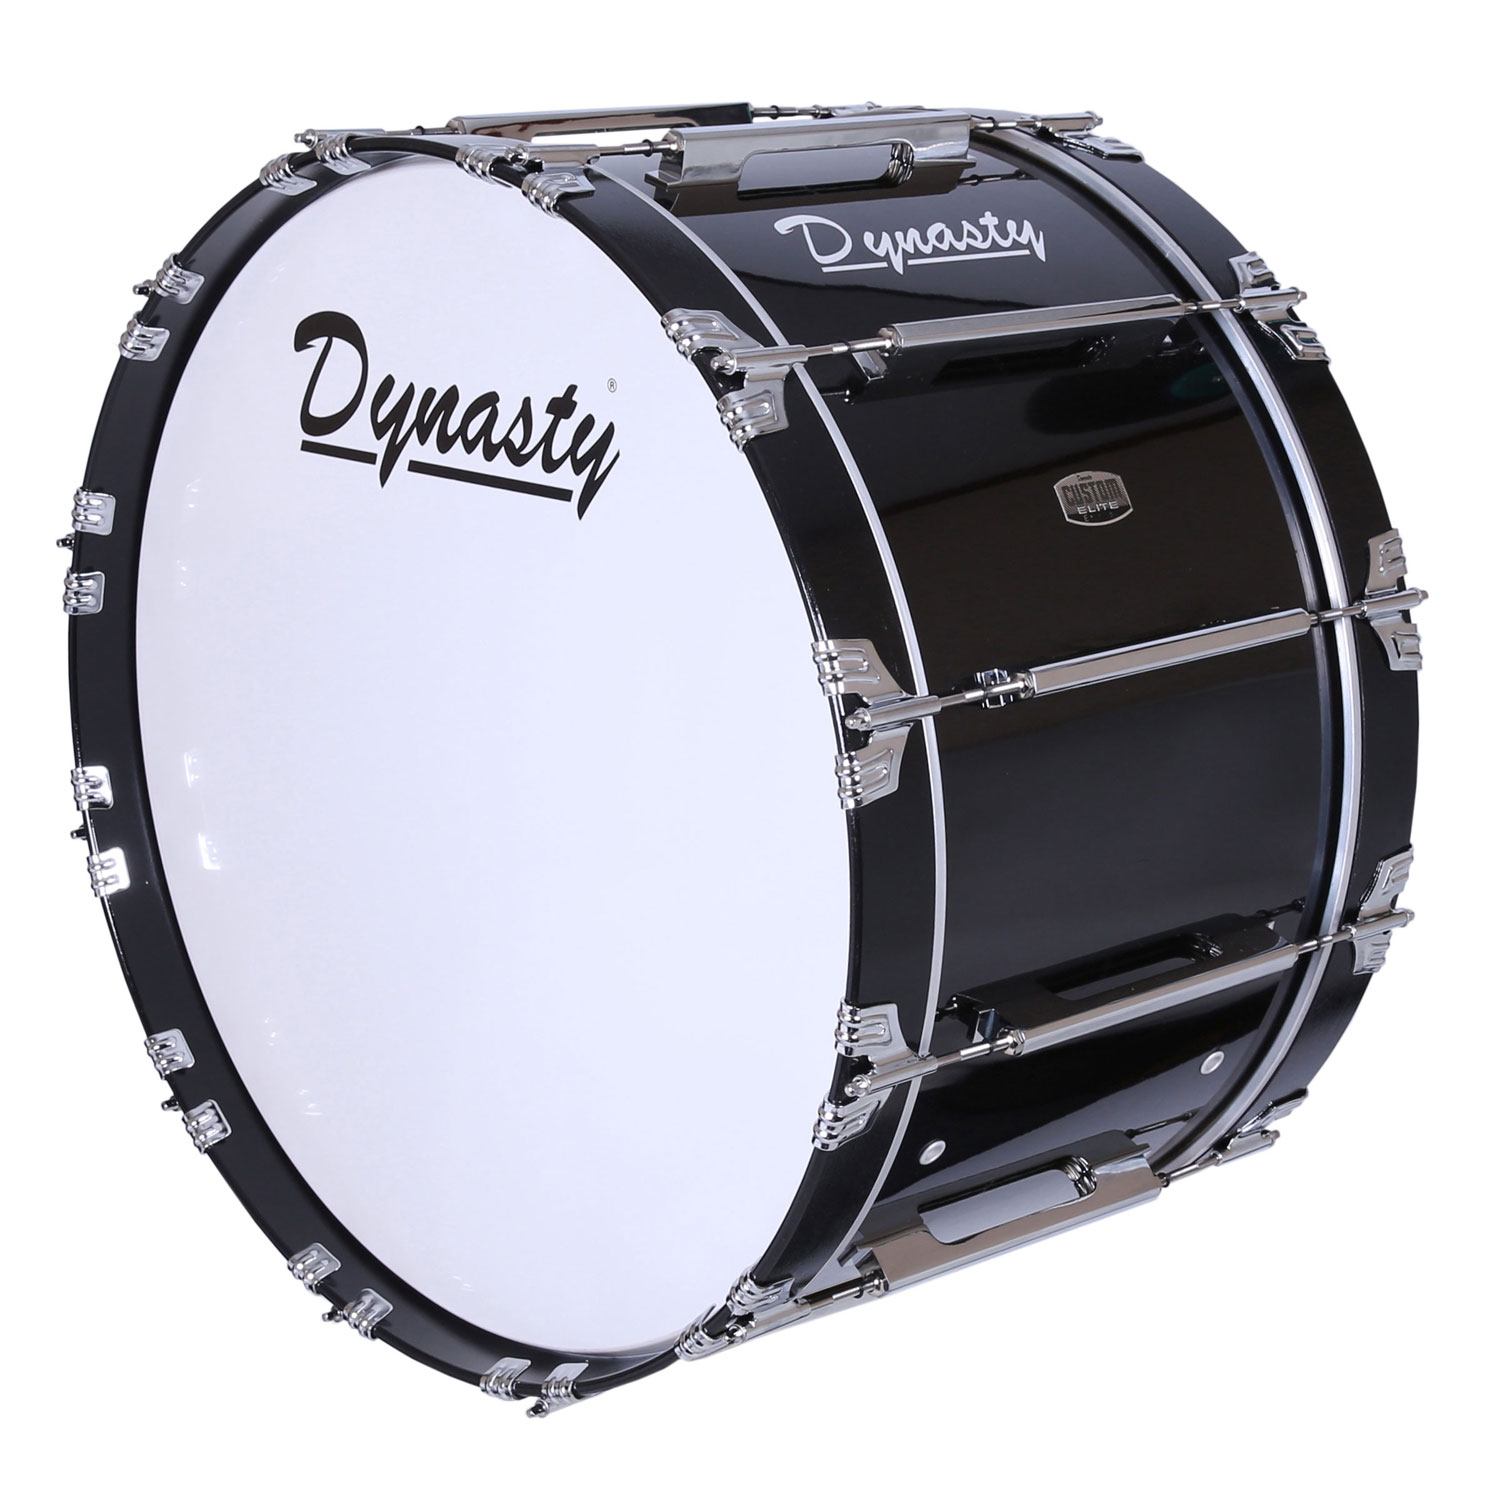 "Dynasty 28"" Custom Elite Marching Bass Drum in Black/Chrome"